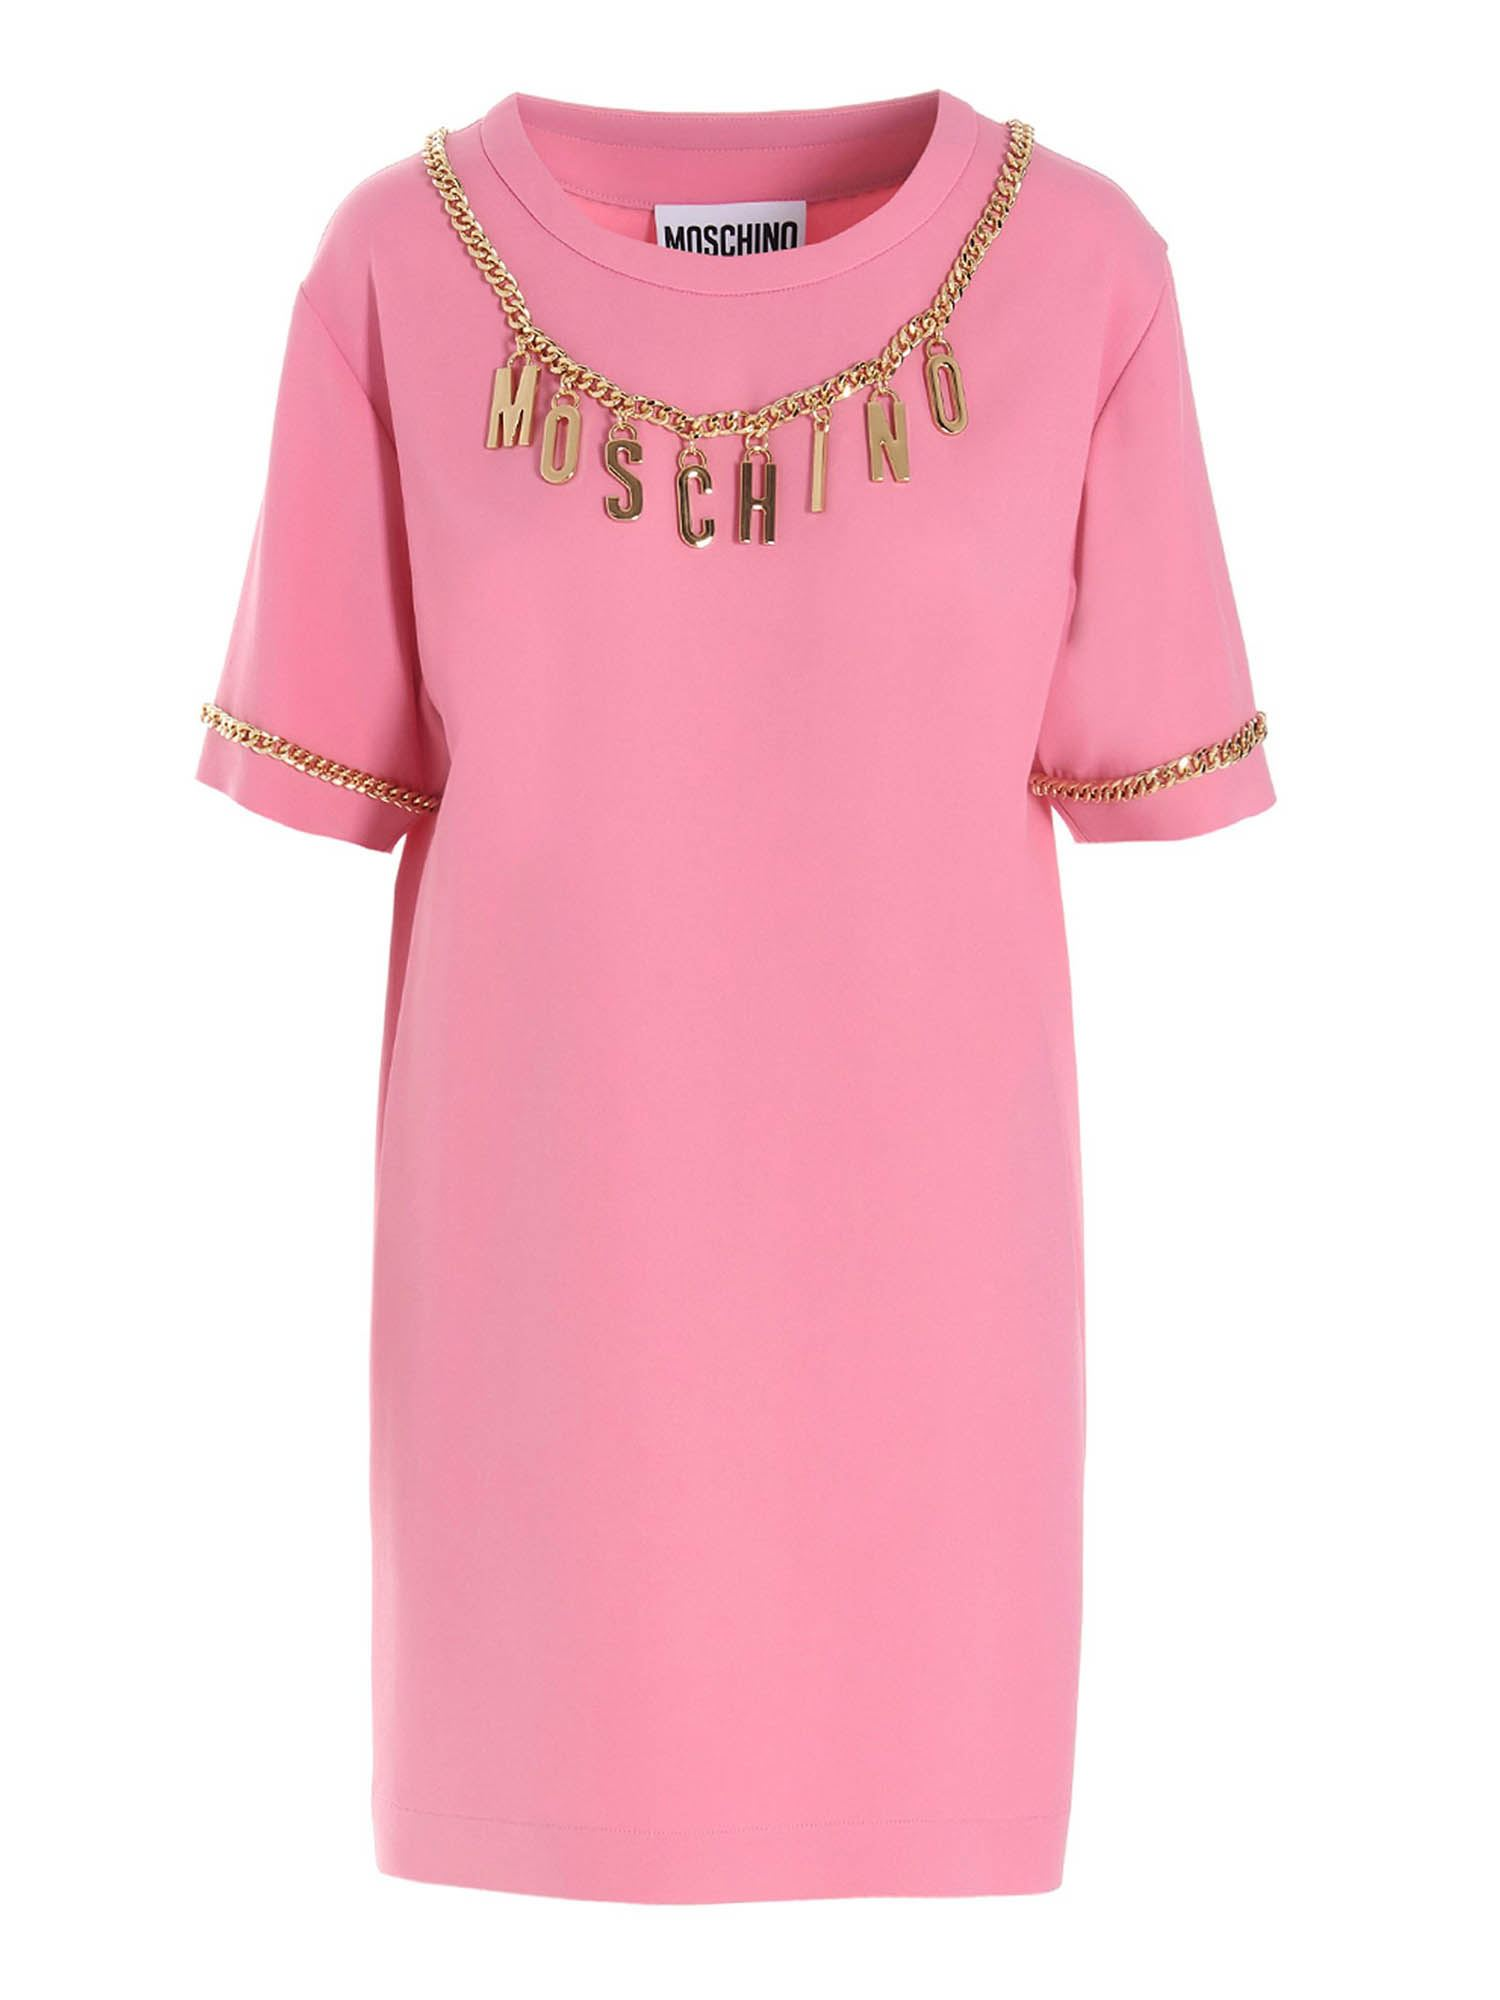 Moschino LETTERING CHARMS T-SHIRT DRESS IN PINK